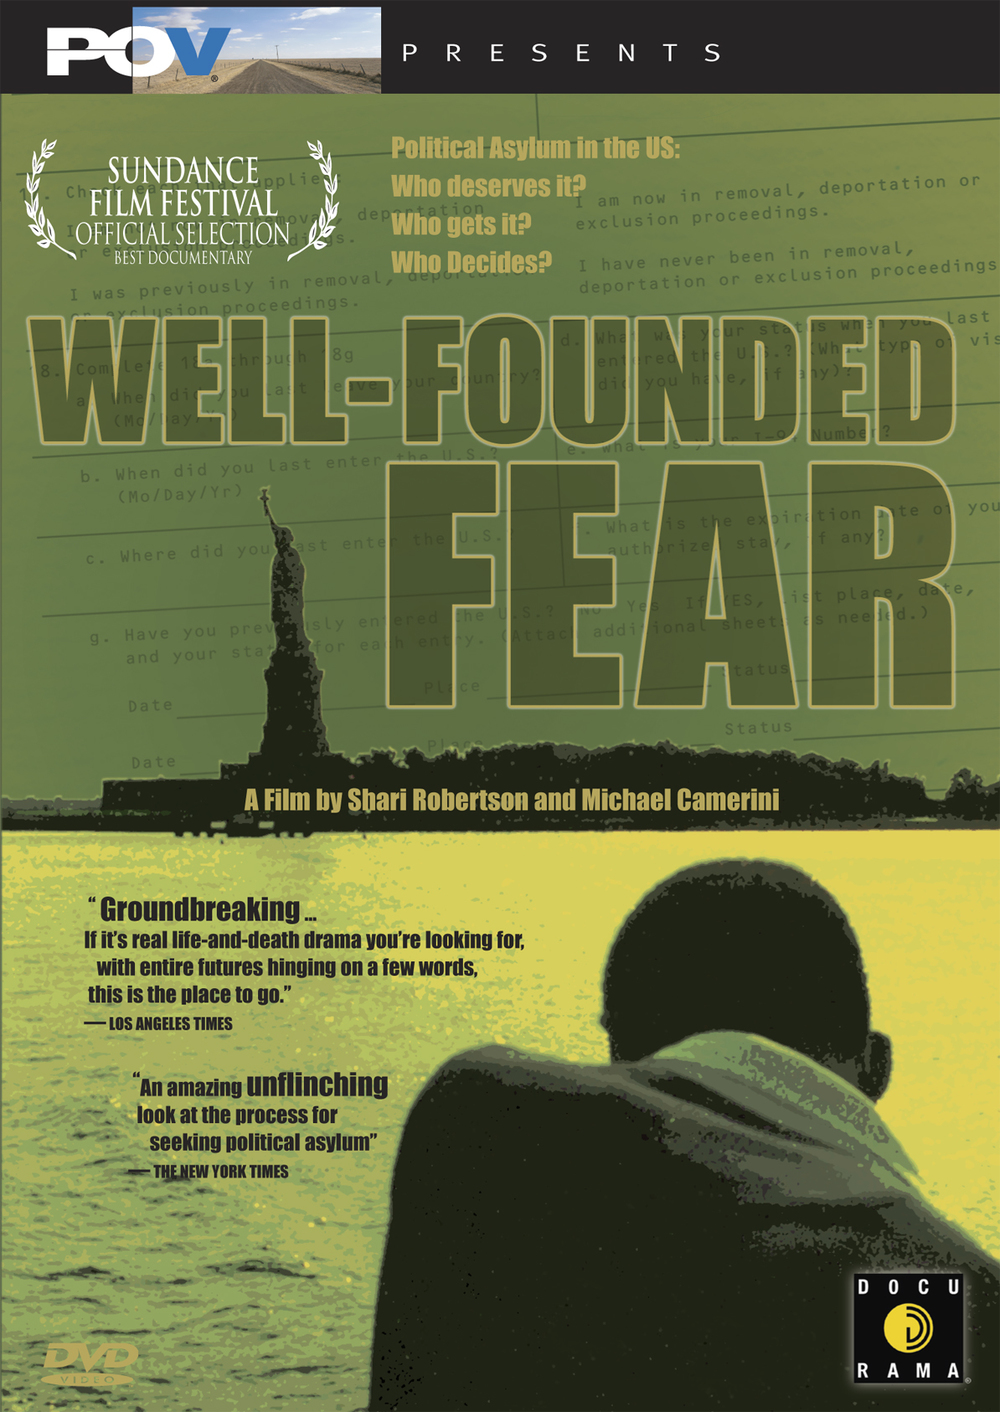 Well-Founded-Fear-2cfac433.jpg